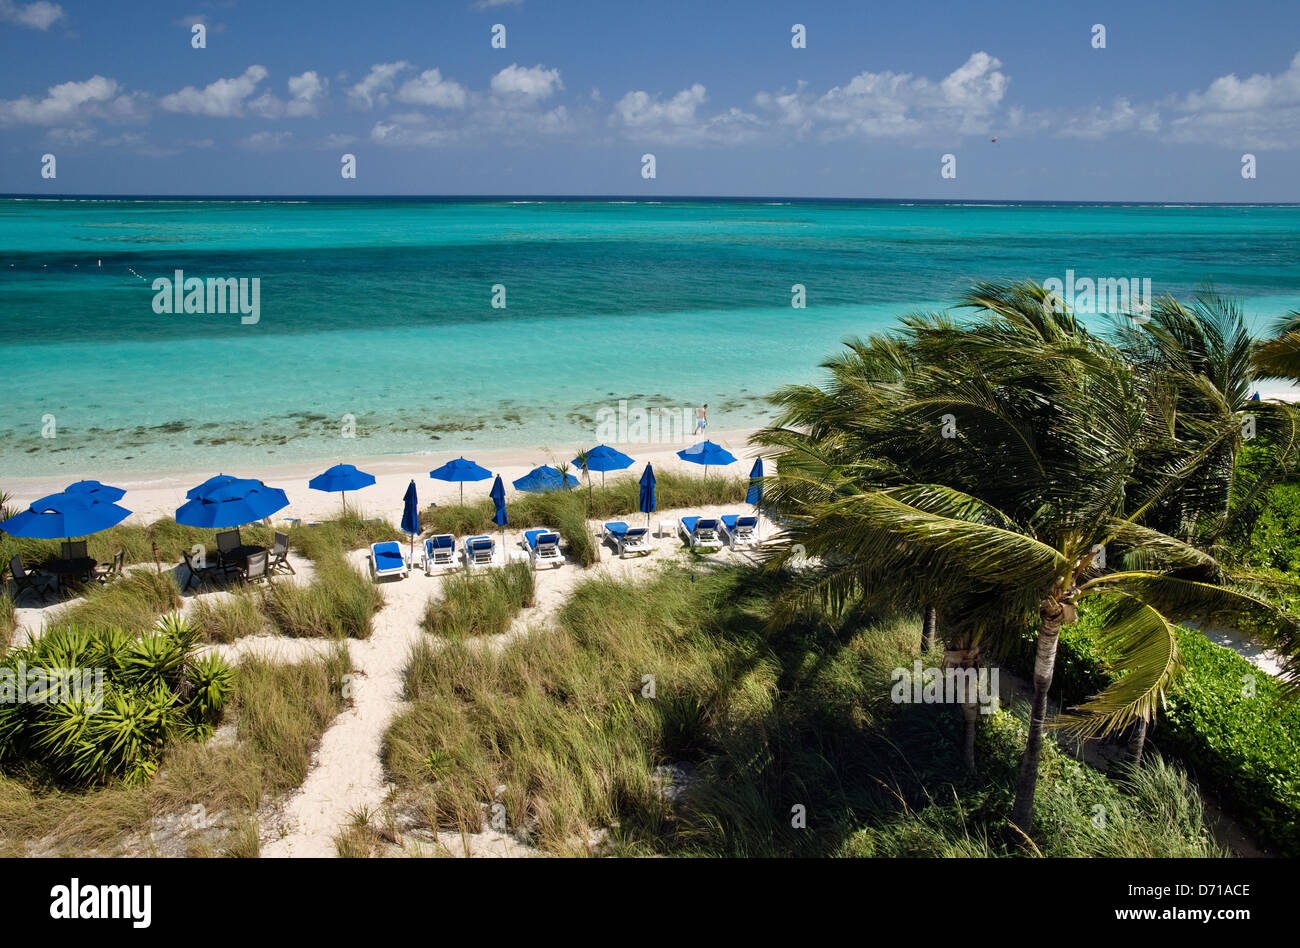 View of Beachfront on Grace Bay in Providenciales, Turks & Caicos - Stock Image